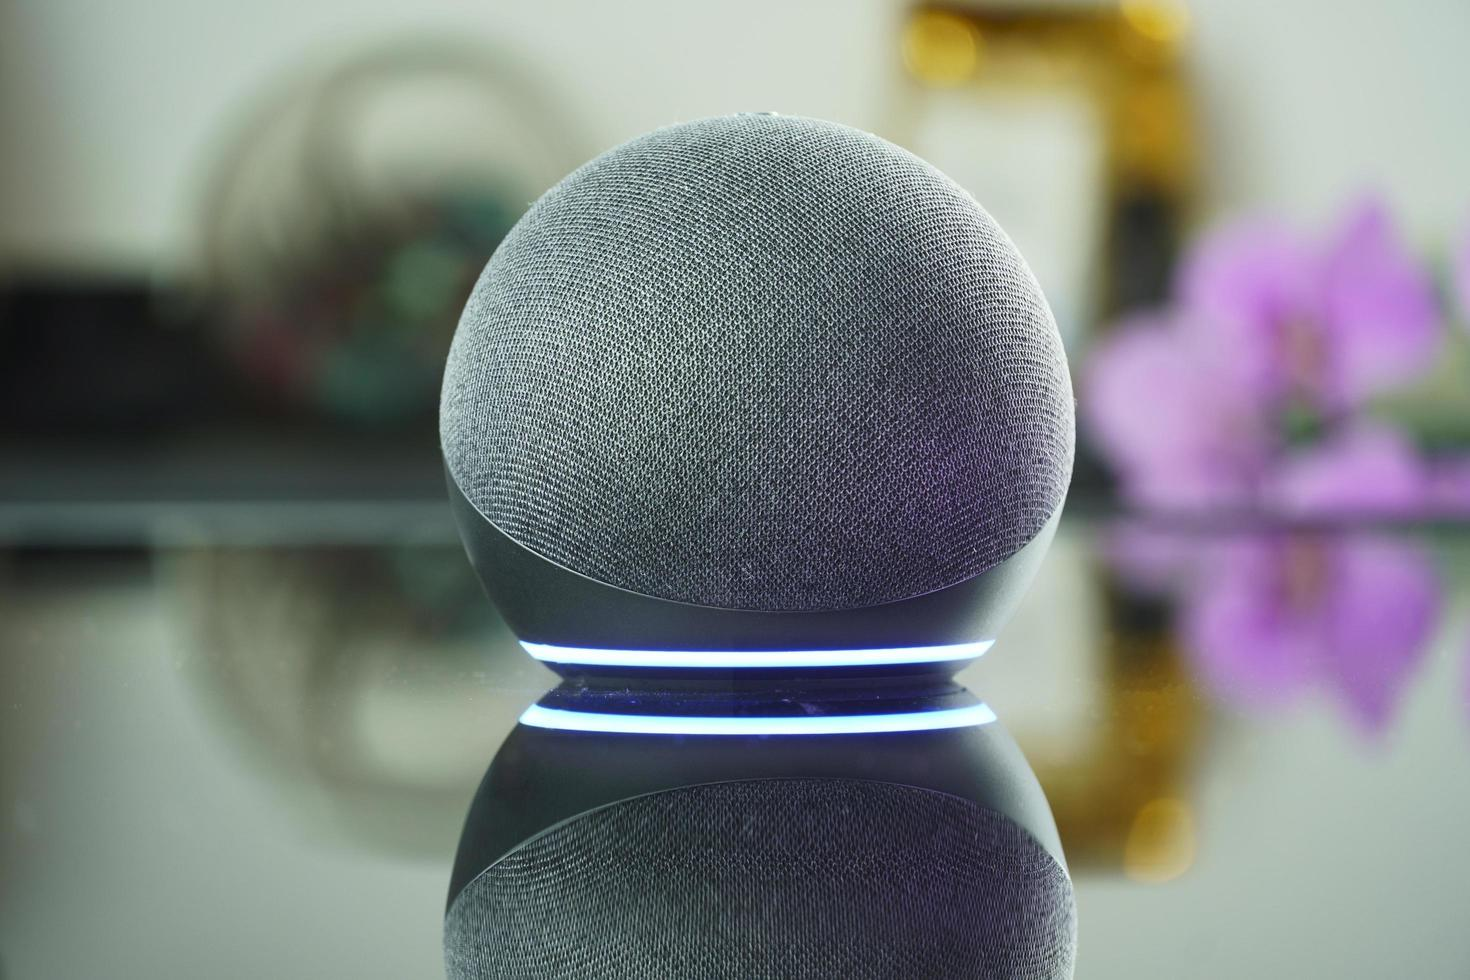 Smart speaker and a virtual assistant photo